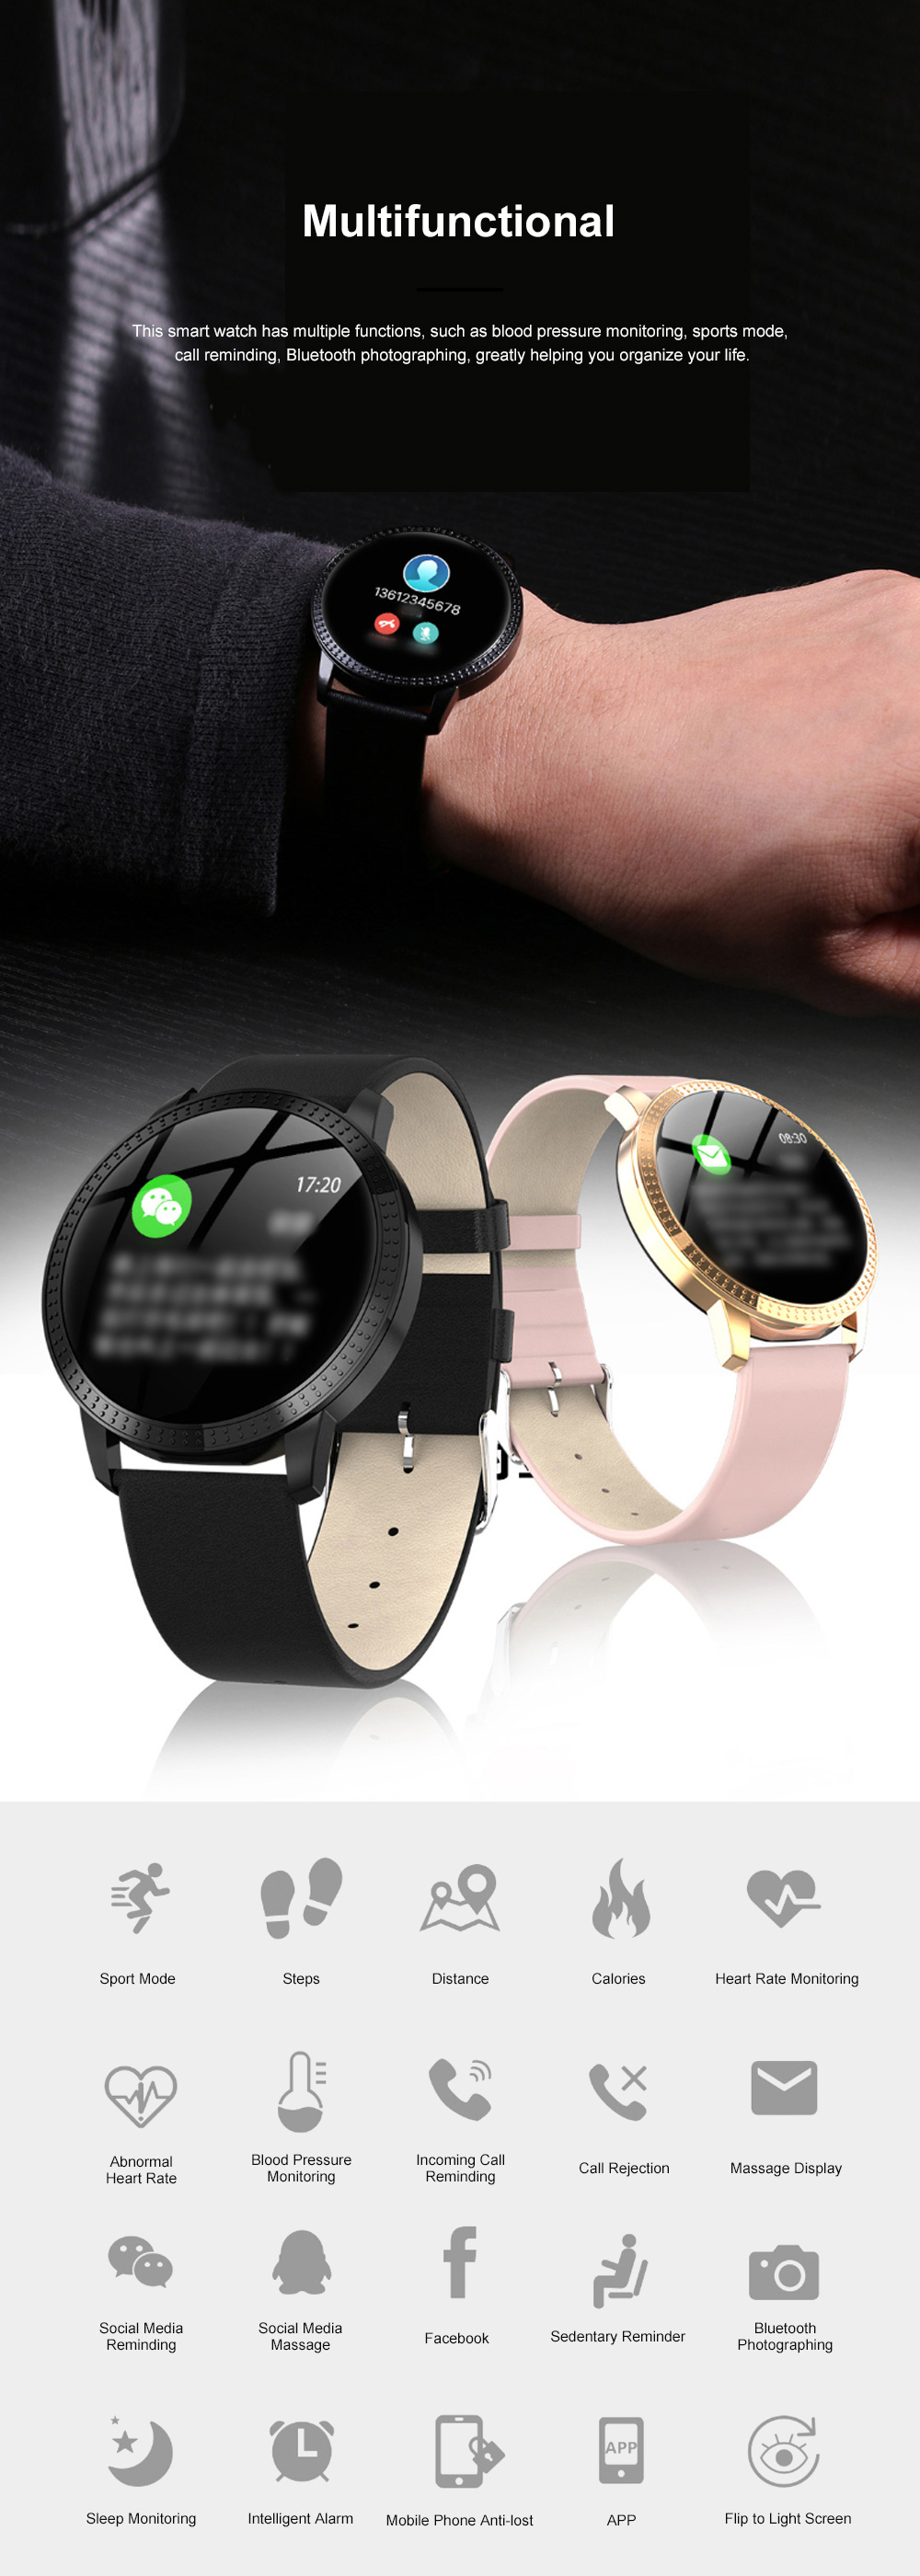 Multifunctional Waterproof Large Round Screen Intelligent Smart Watch with Leather Strap Bluetooth Photographing 6